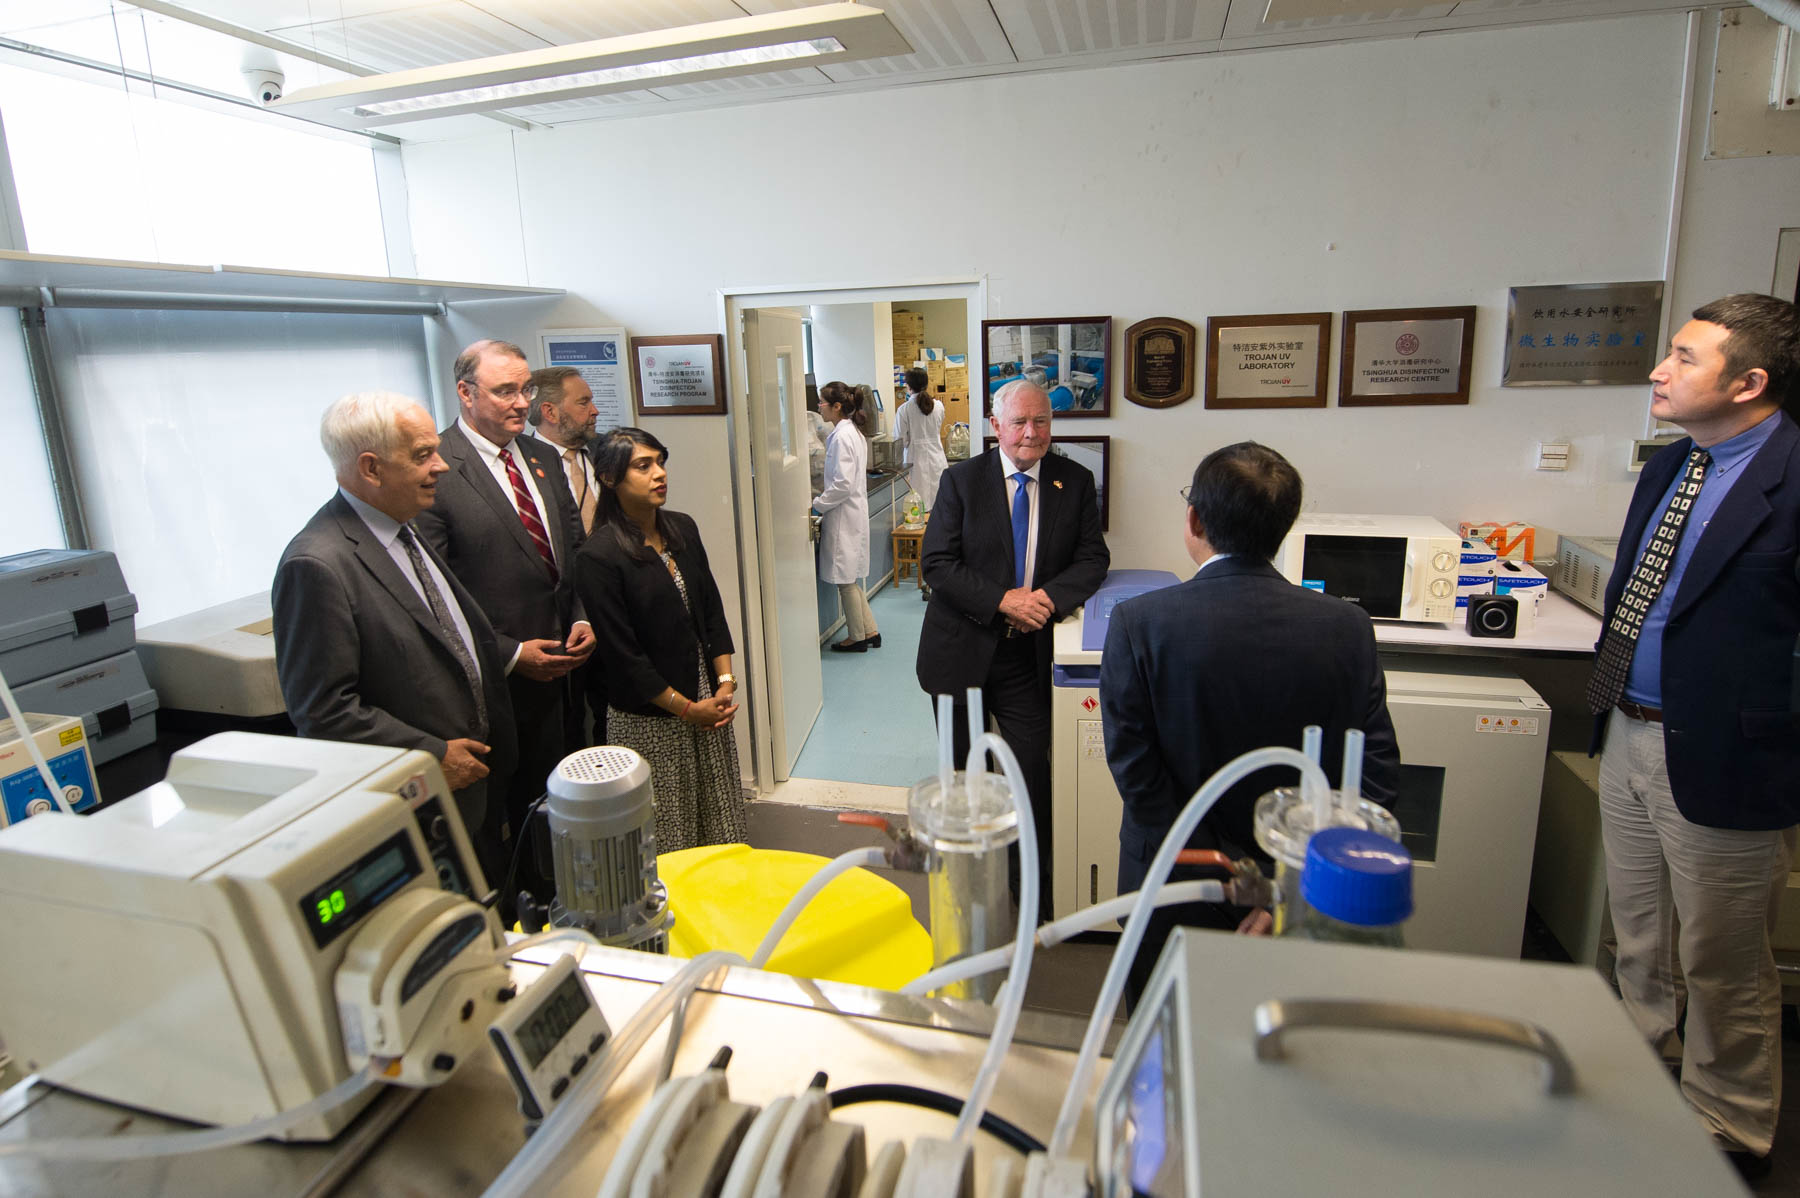 Afterwards, the Governor General and delegates visited a water purification research lab jointly operated by Canadian company Trojan Technologies and Tsinghua University's School of Environment Engineering and Science.